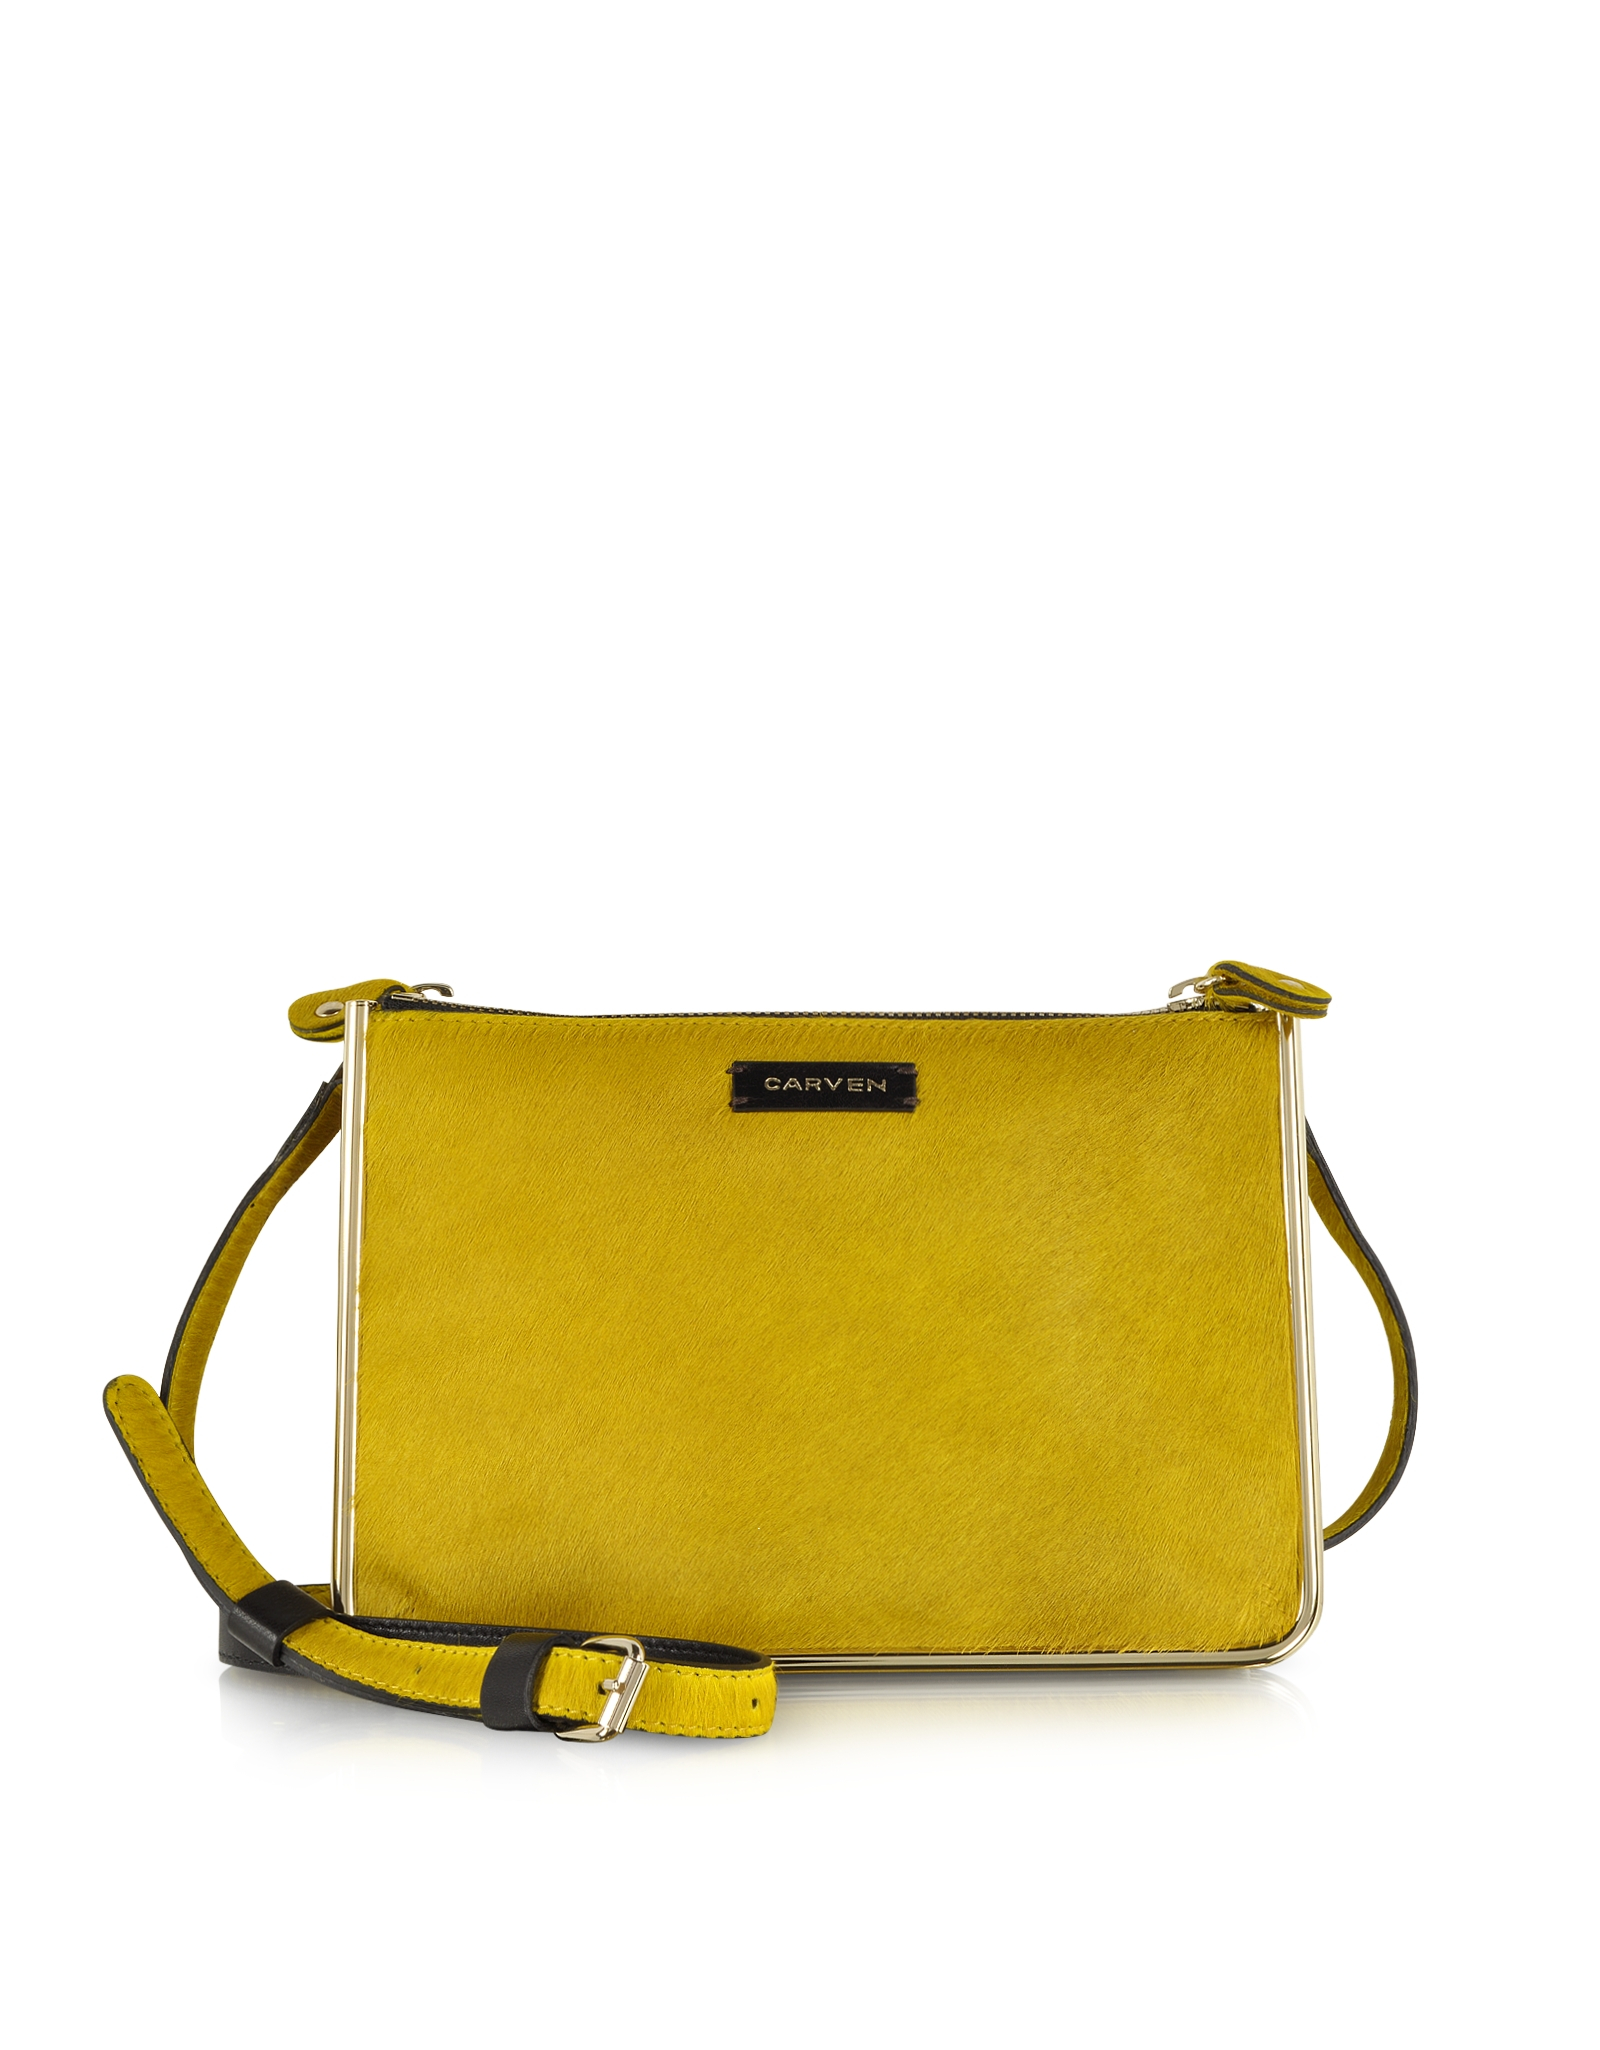 carven duo jonquille haircalf crossbody bag in yellow lyst